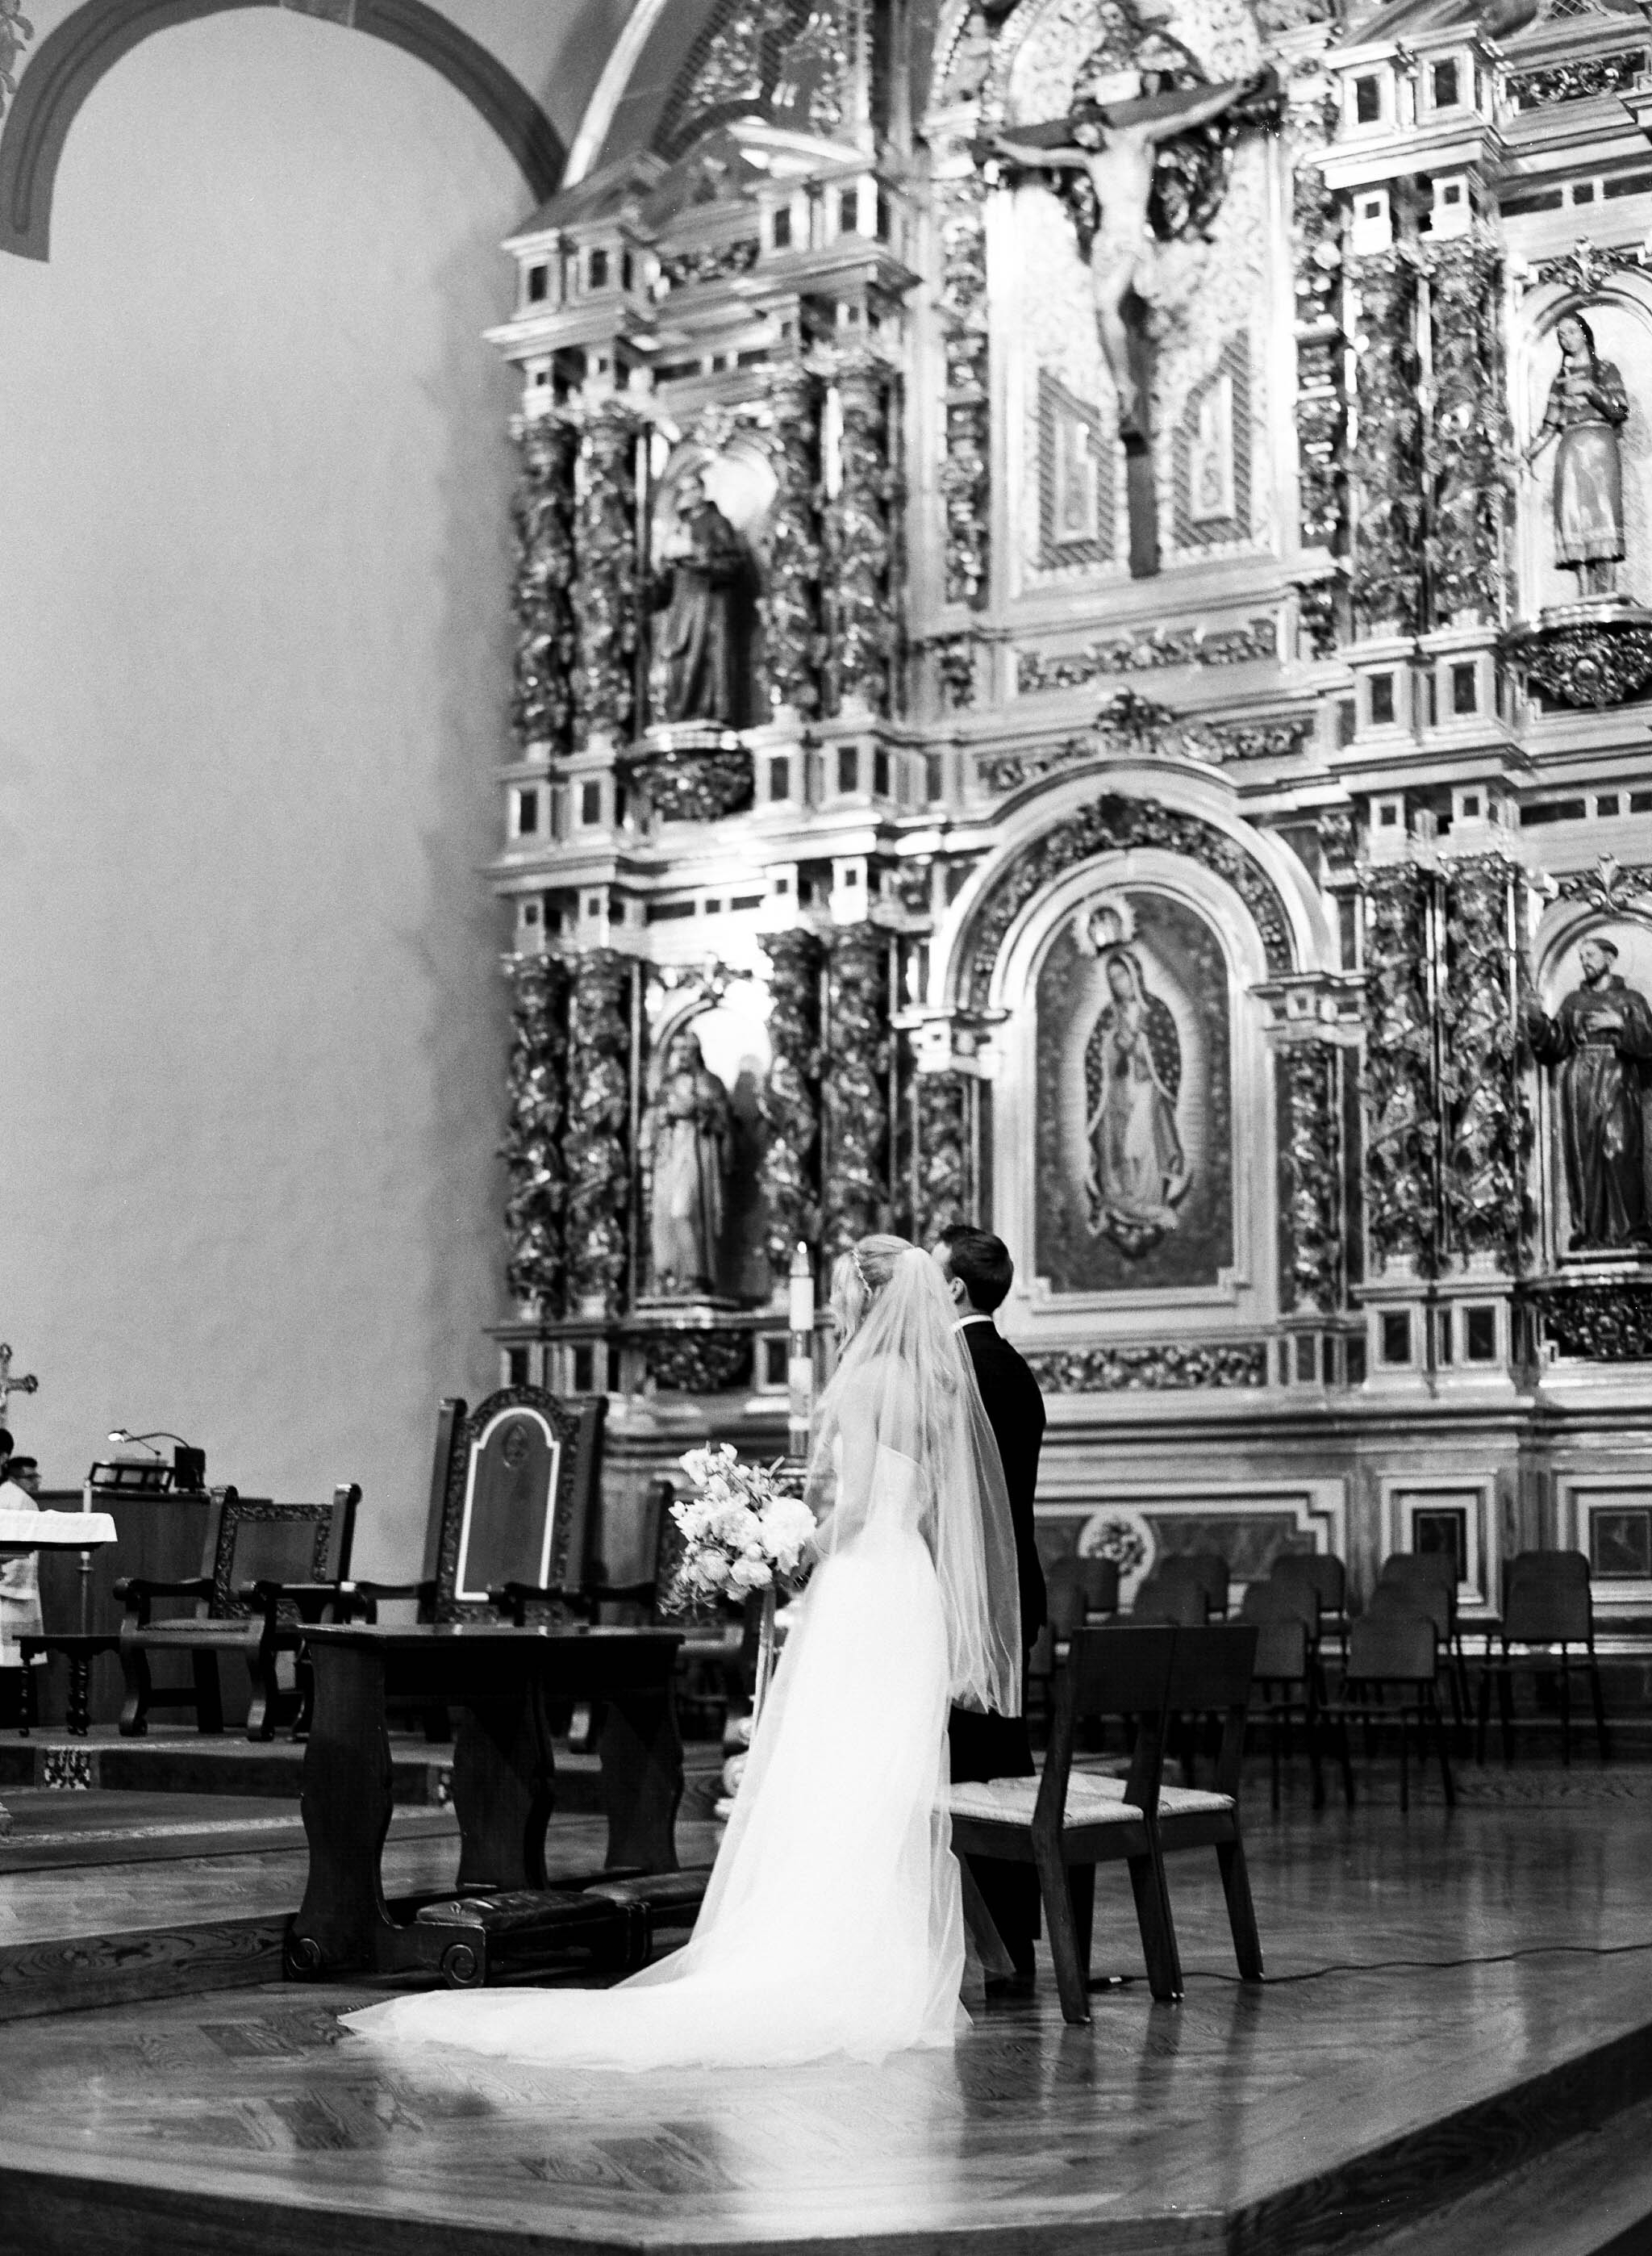 kelsandmichael_weddingphotography_missionwedding-18.jpg